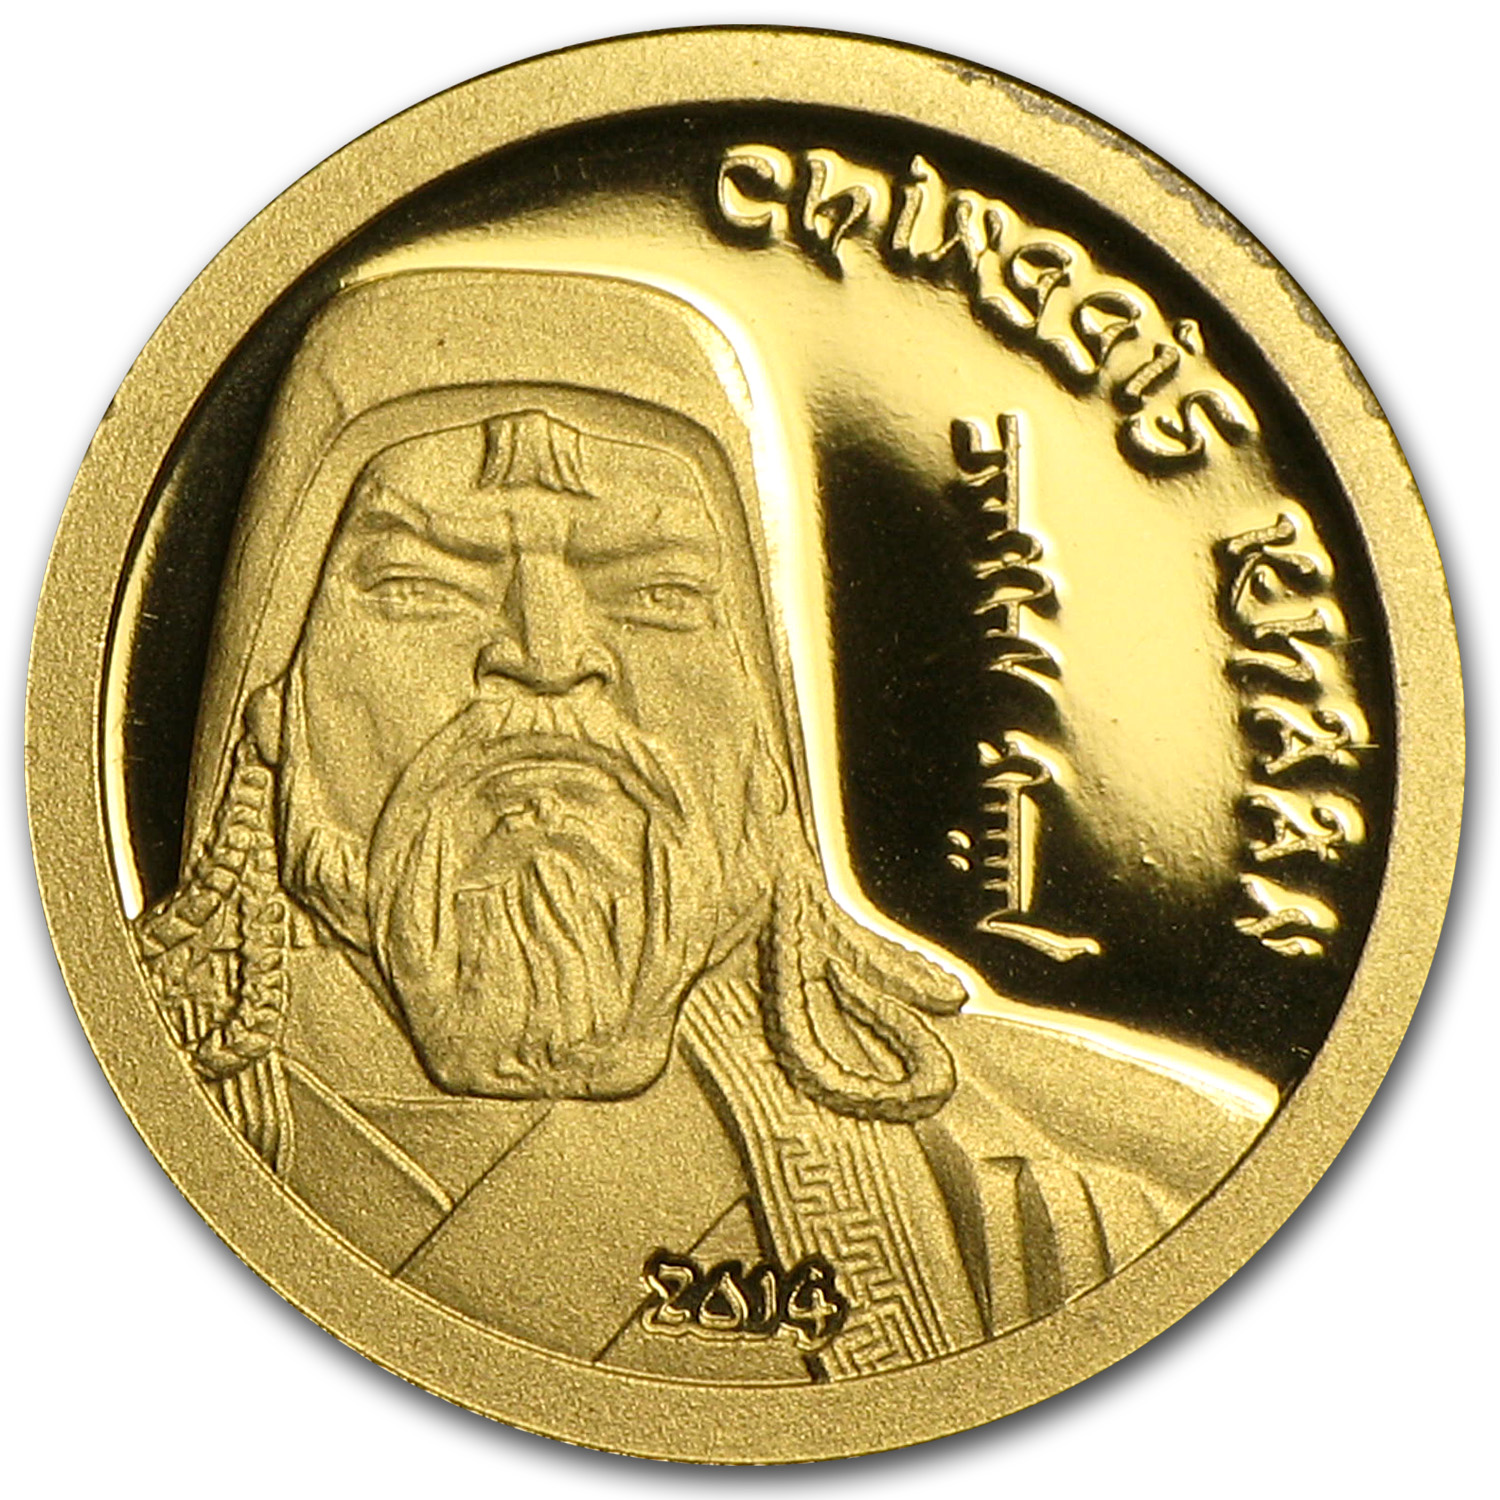 2014 Mongolia 1/2 gram Proof Gold 1000 Togrog Chinggis Khaan